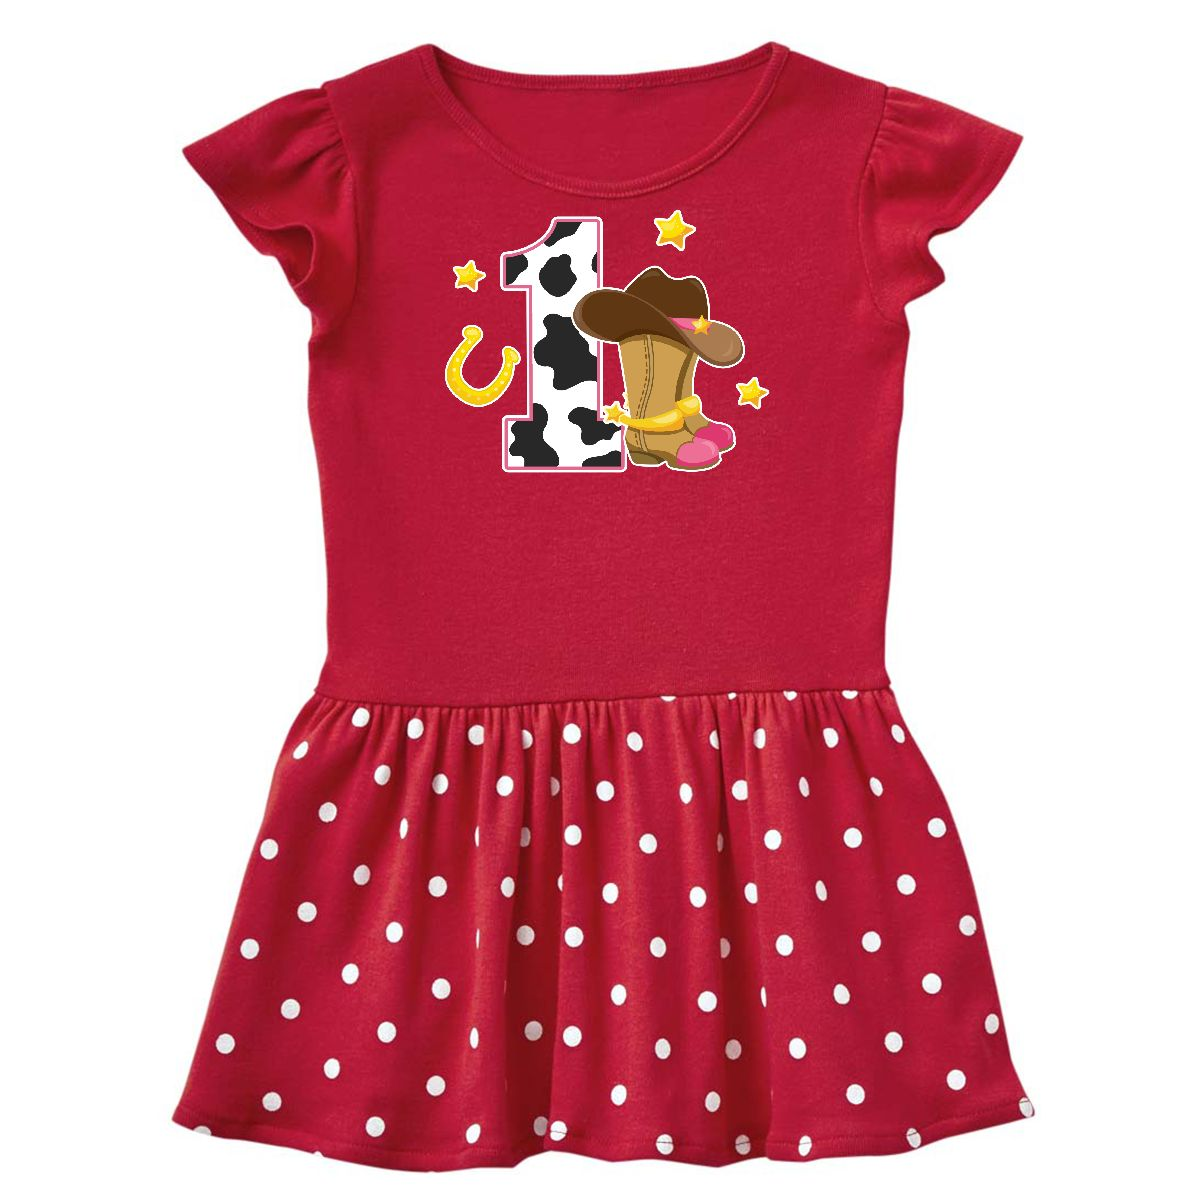 Cowgirl Birthday One Year Old With Boots Infant Dress Red And Polka Dot 6 Months